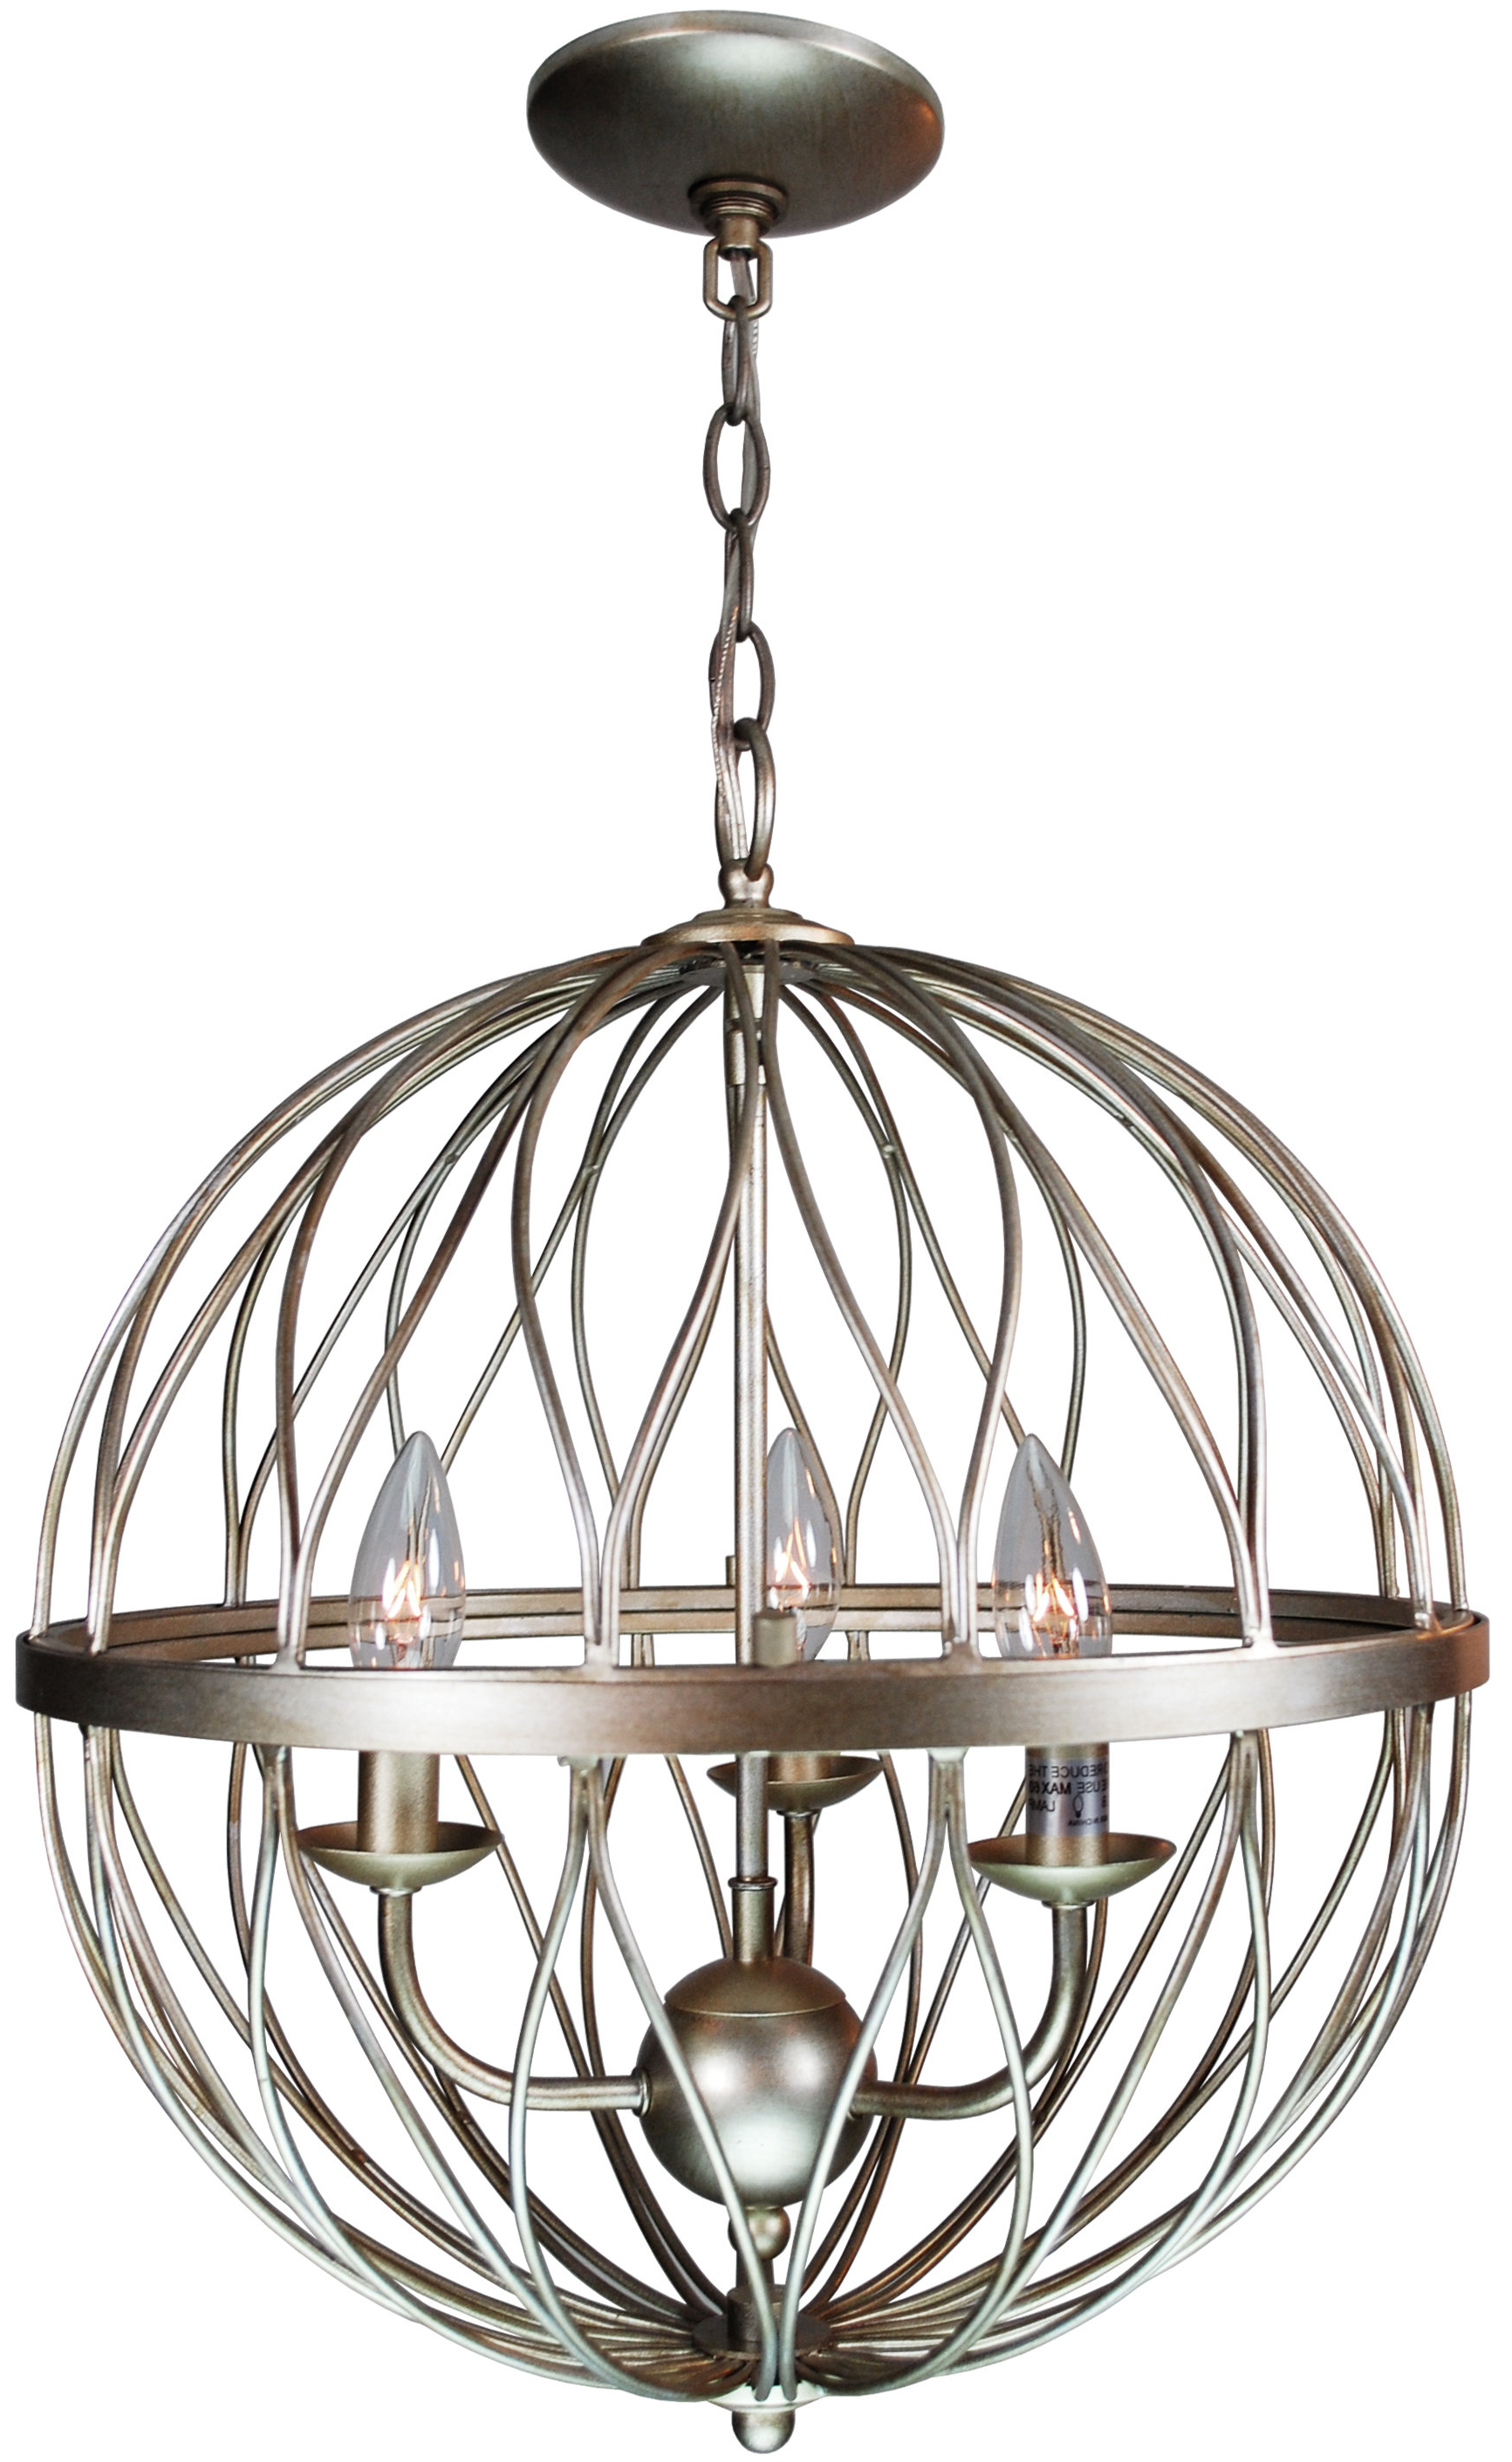 Brittain 3 Light Globe Chandelier With Most Popular Shipststour 3 Light Globe Chandeliers (View 4 of 25)